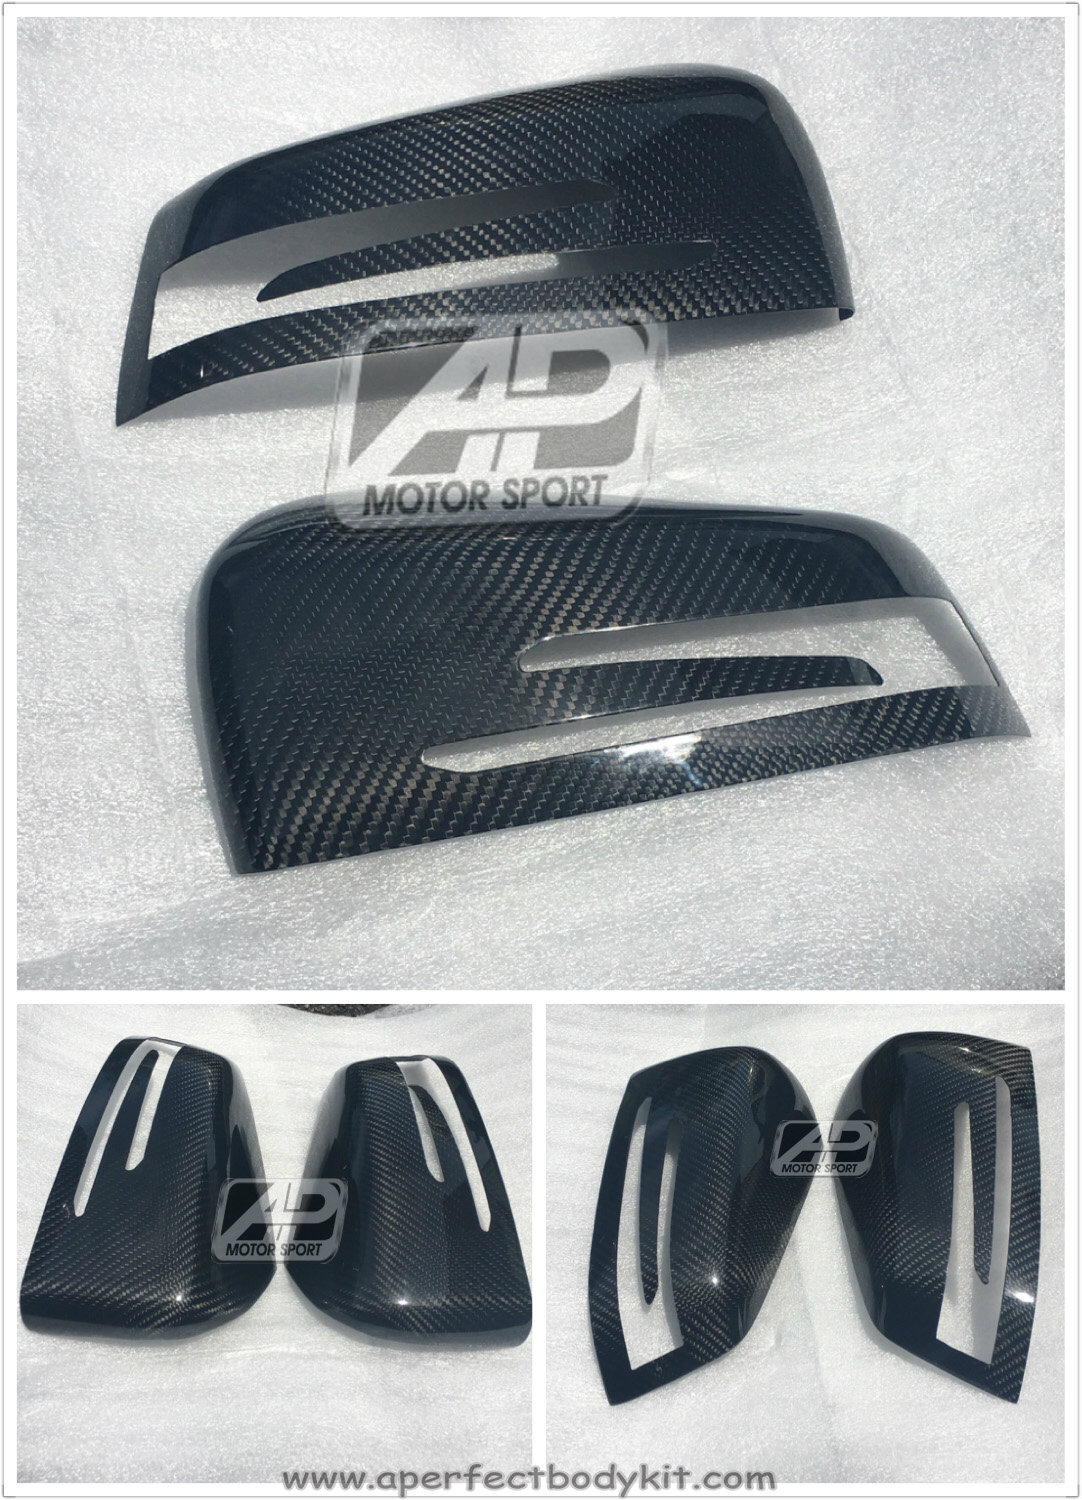 Mercedes A/C/E/CLS/CLA Carbon Fibre Side Mirror add on cover